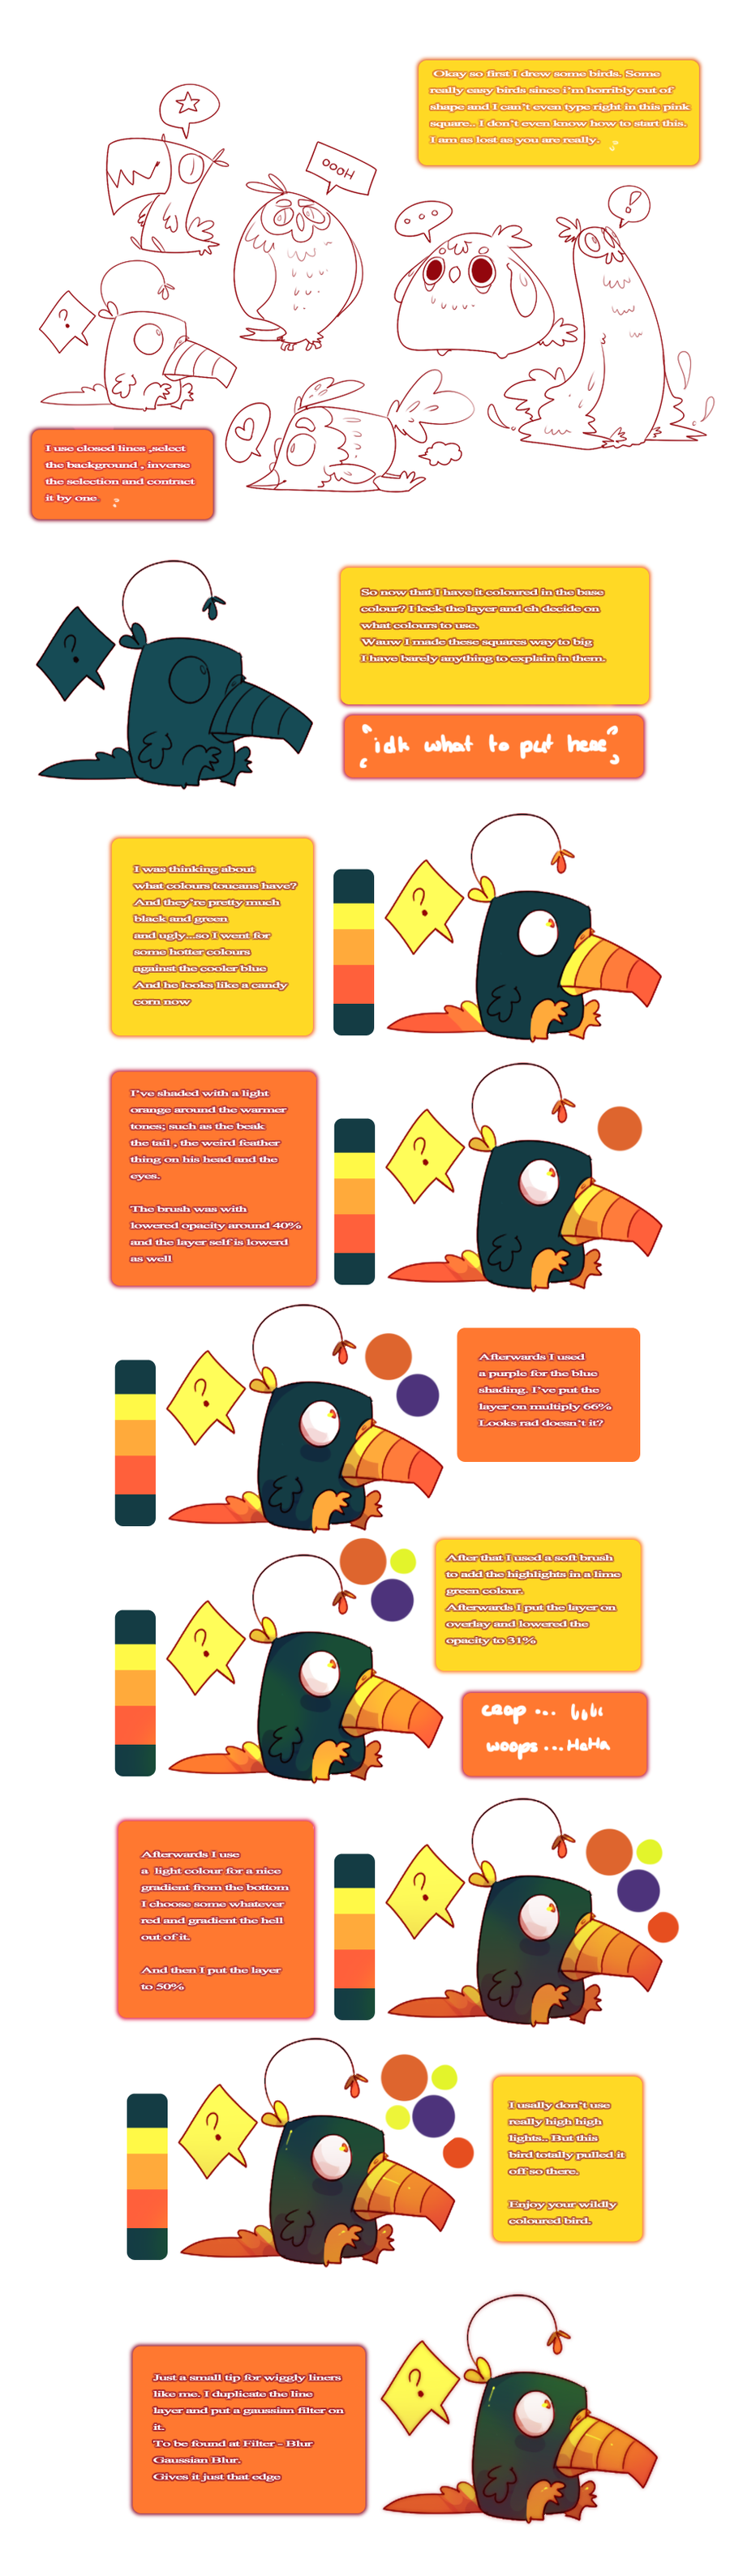 Woe's colouring tutorial by Woestijn